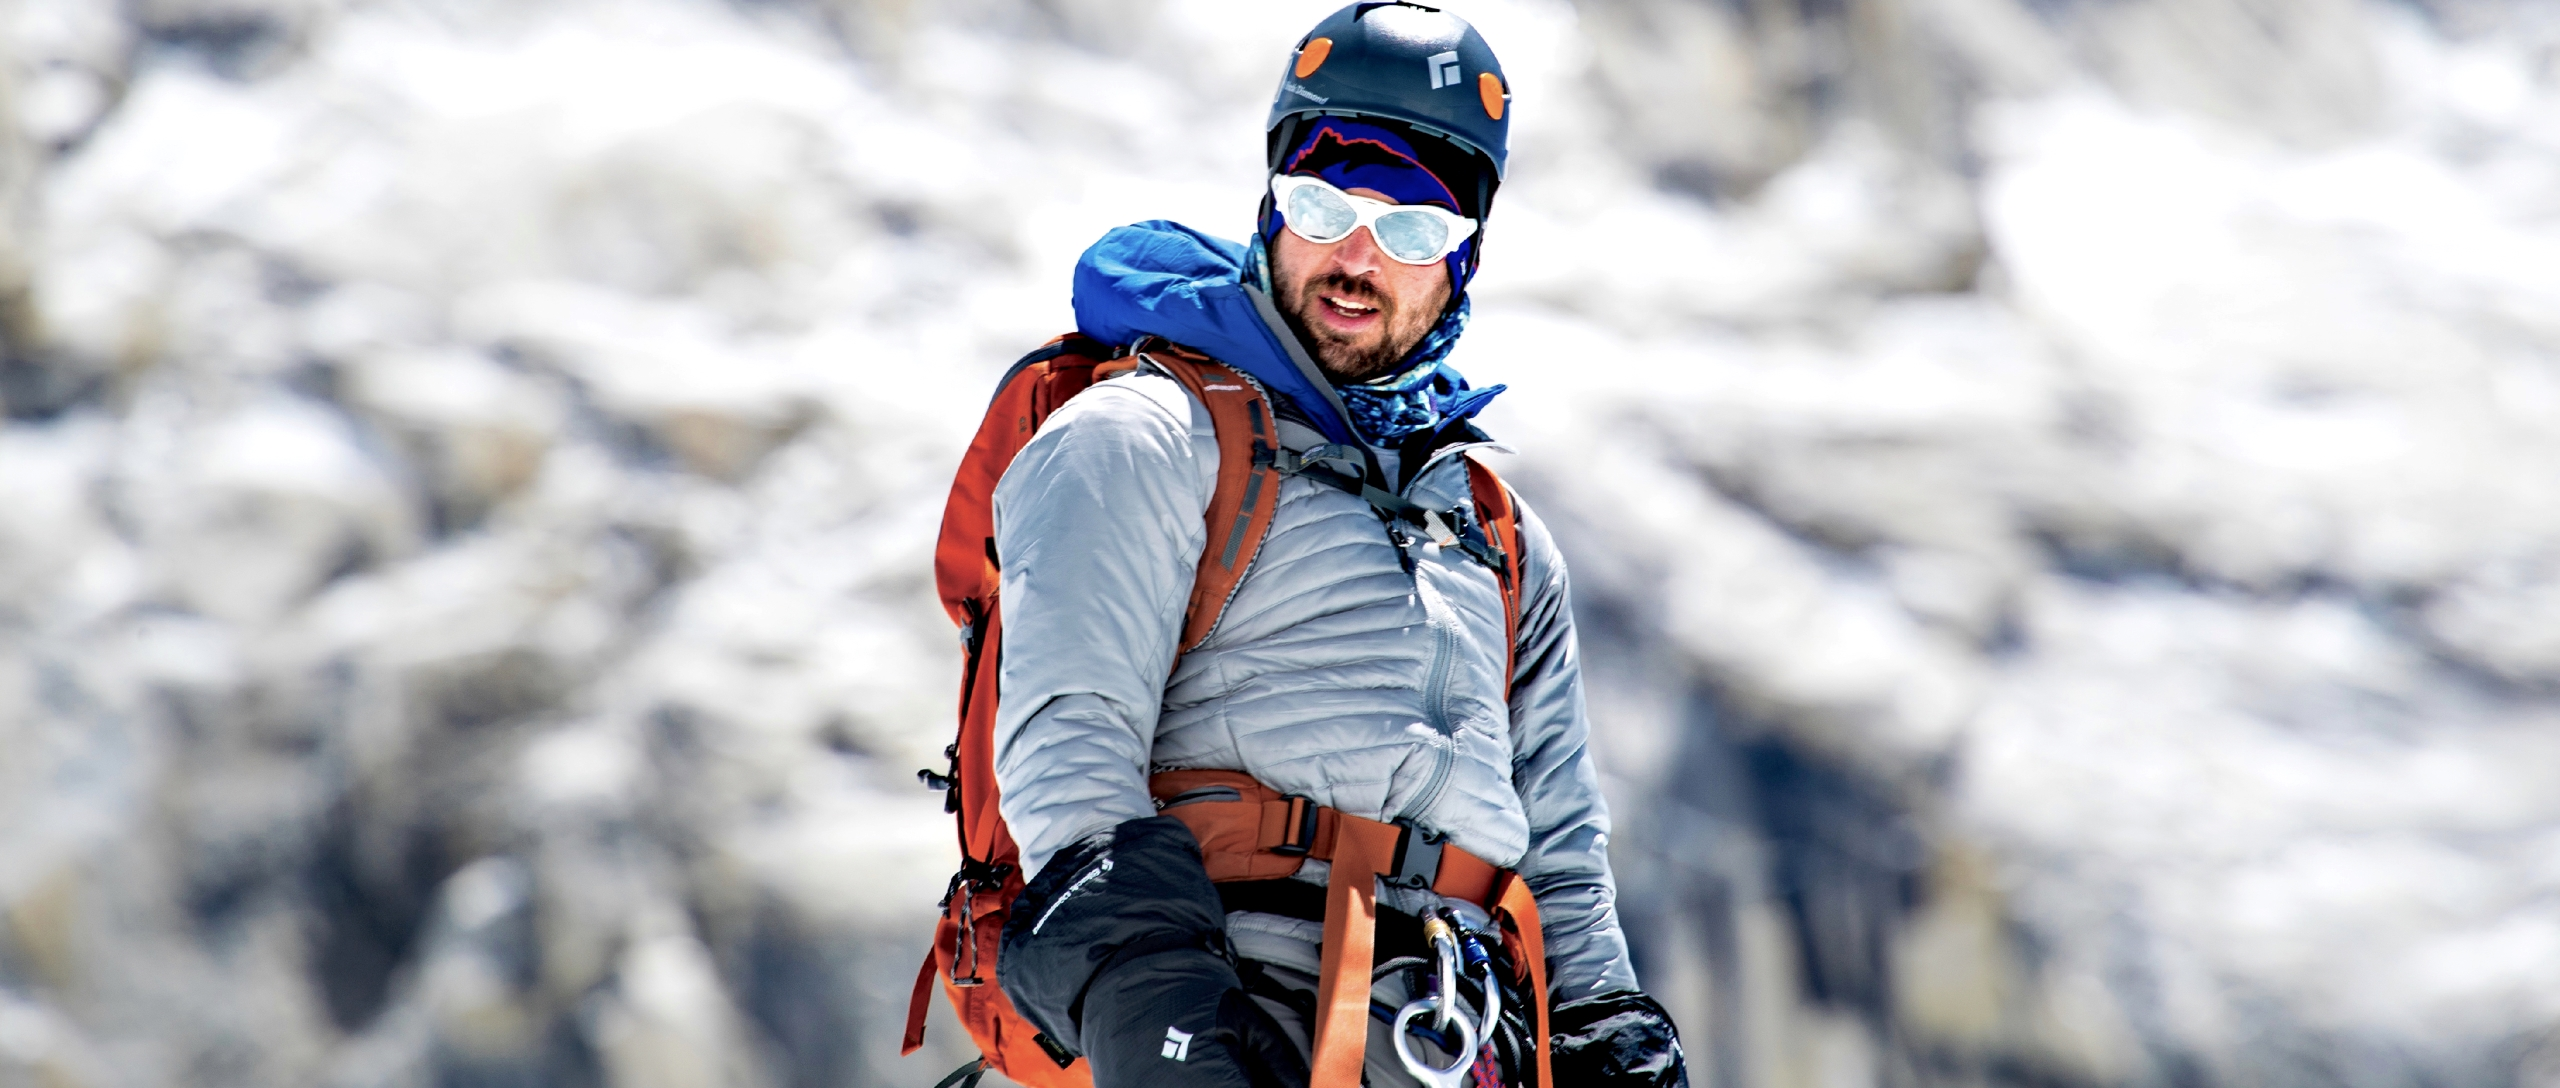 Climbing Mount Everest with severe haemophilia